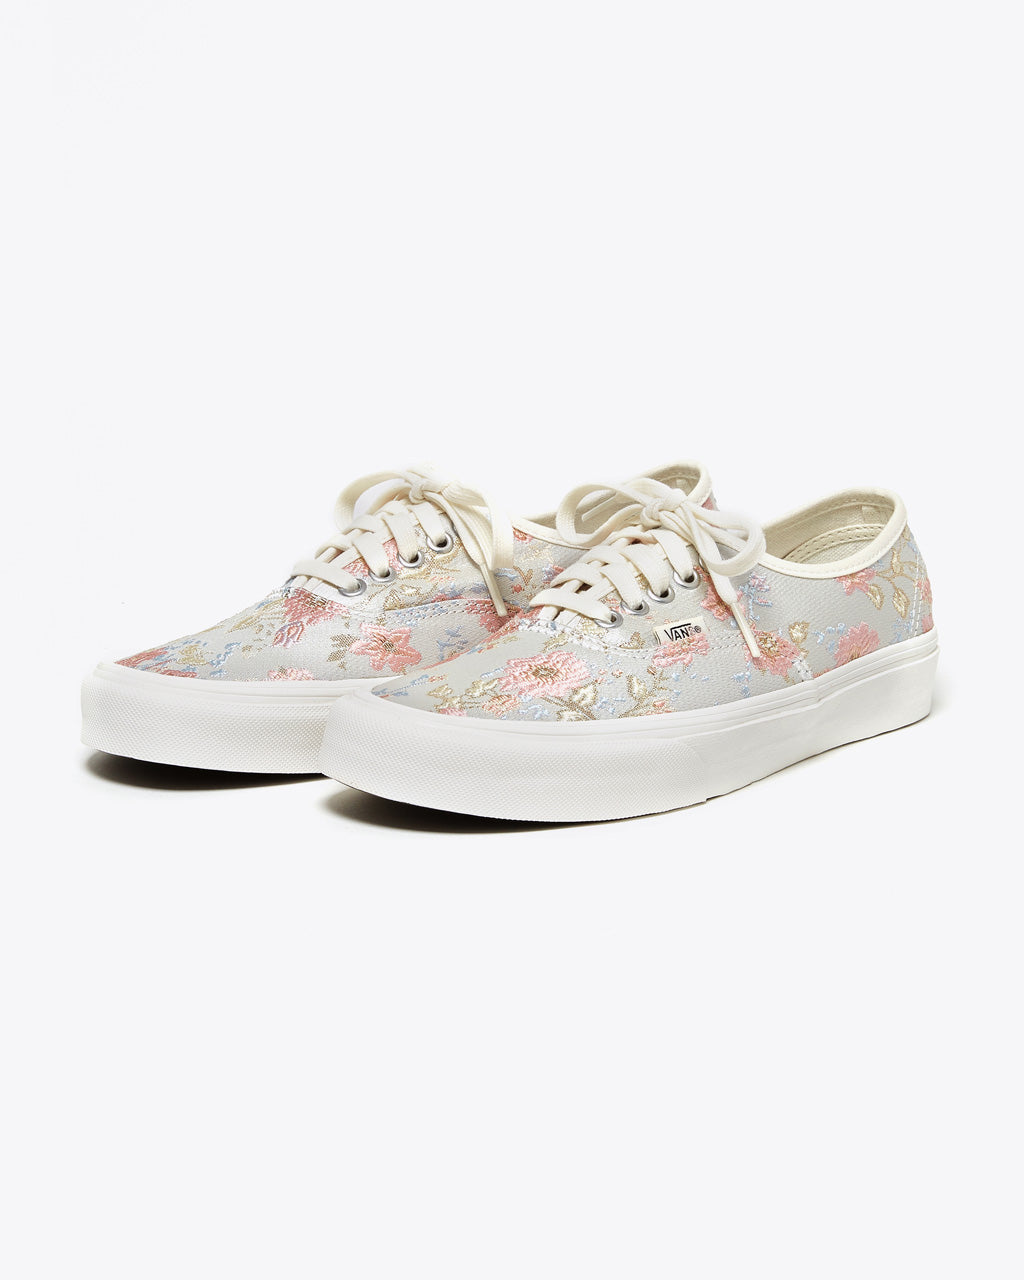 tapestry designed authentic vans